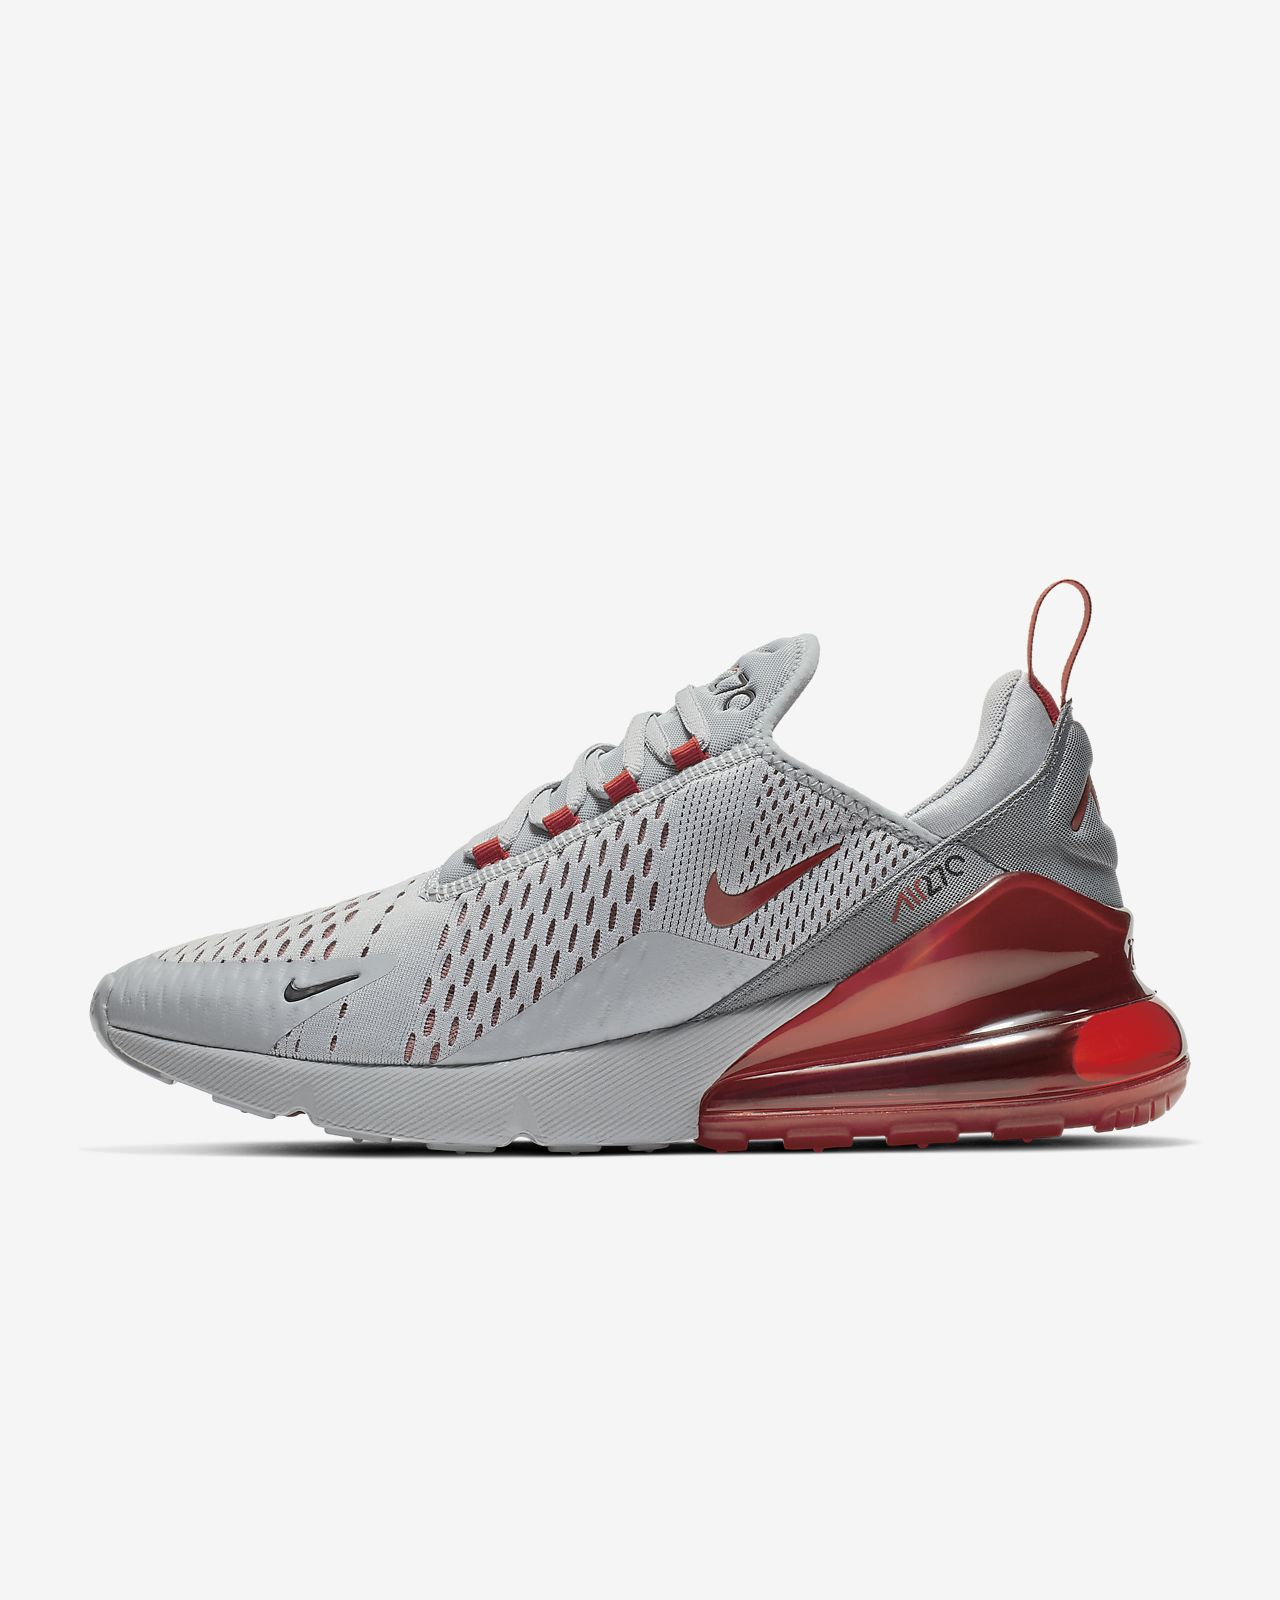 cheaper db6da 83a9e Nike Air Max 270